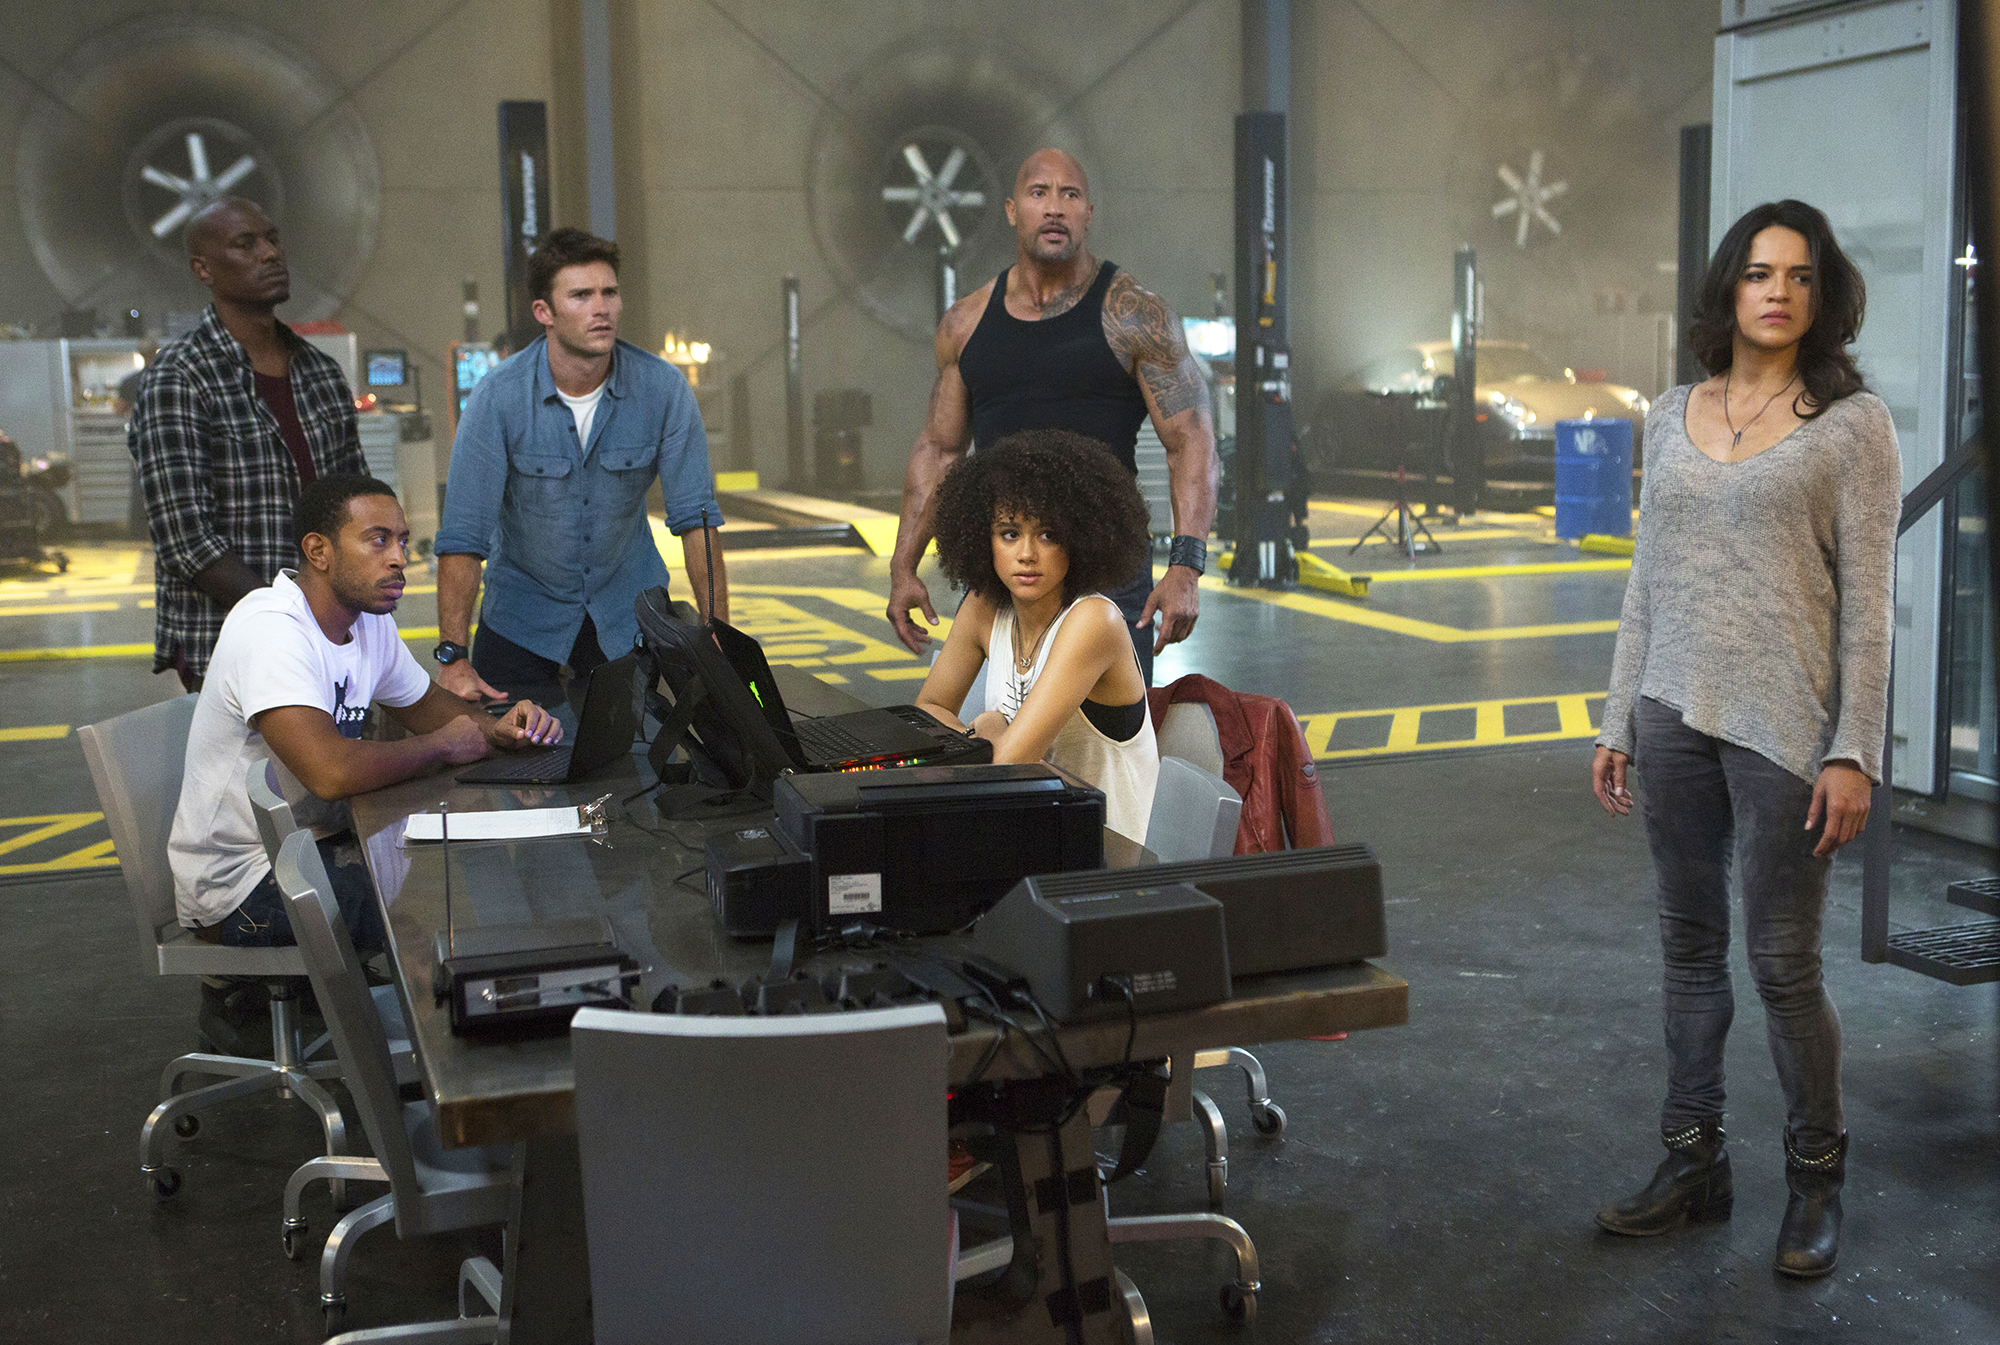 Tyrese Gibson, Chris  Ludacris  Bridges, Scott Eastwood, Nathalie Emmanuel, Dwayne Johnson, and Michelle Rodriguez in The Fate of the Furious.